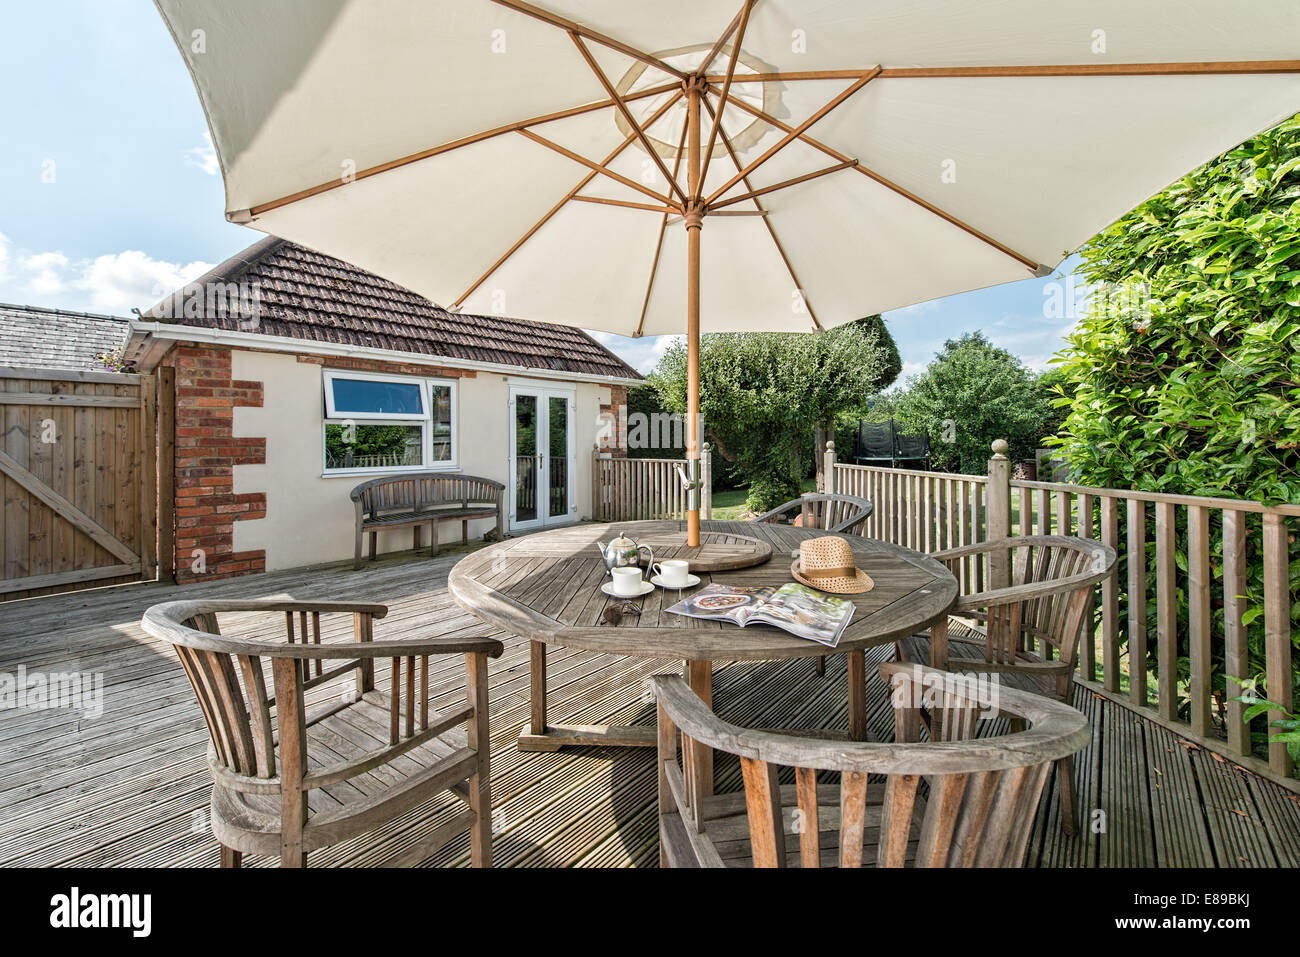 Amazing A Large Parasol Covering Afternoon Tea Served On A Wooden Garden Table U0026  Furniture. Outside On Sunny Day. UK